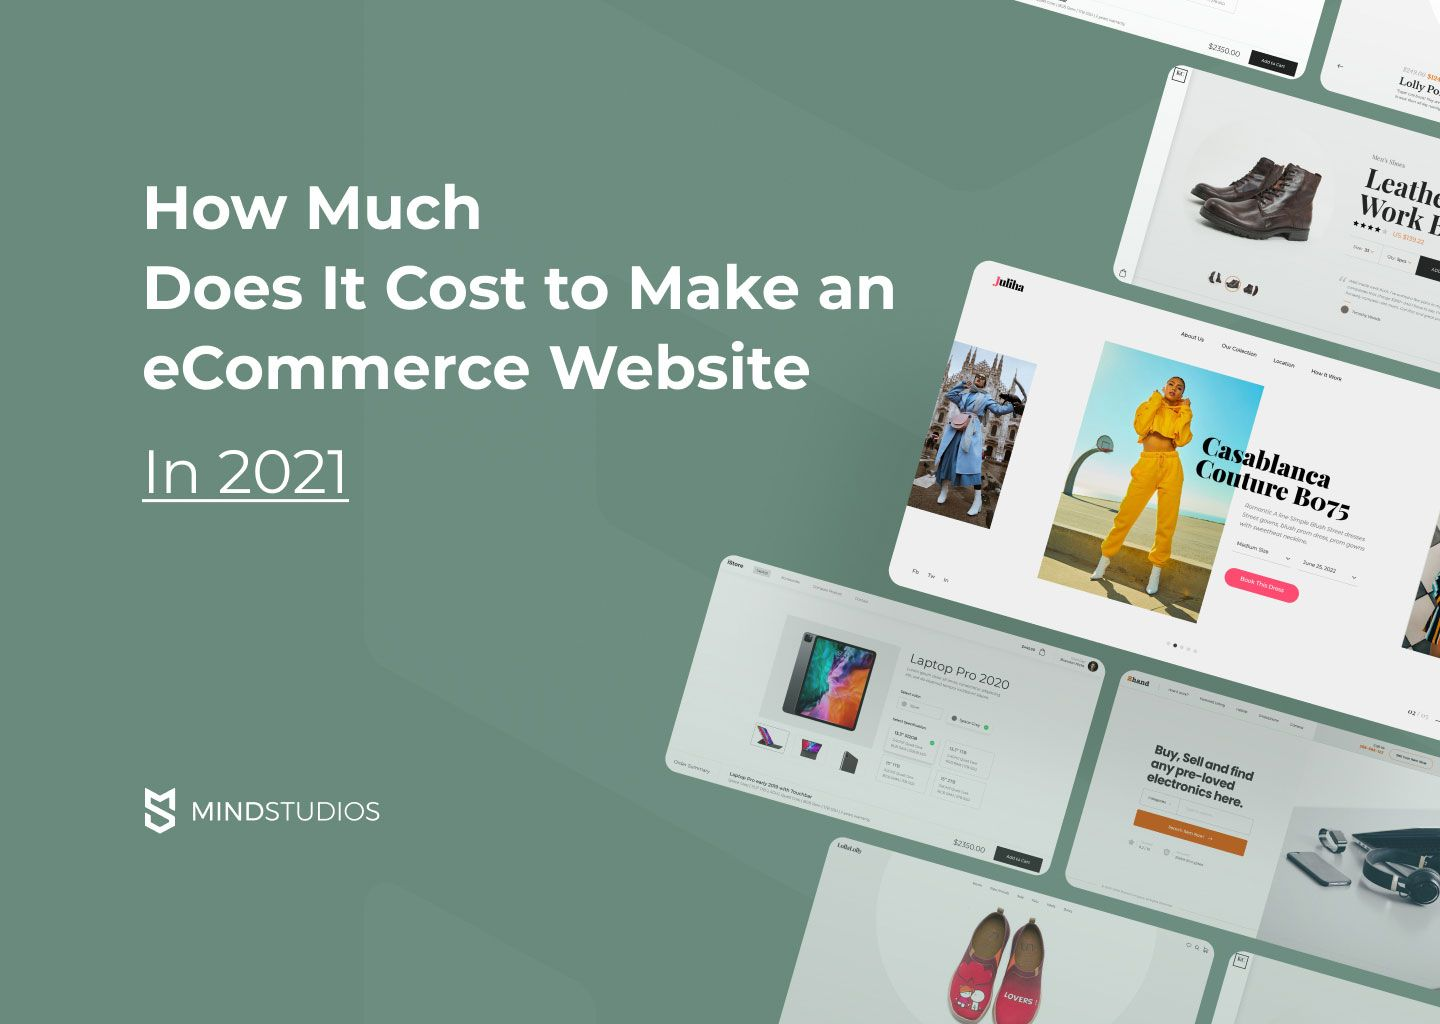 How Much Does It Cost to Make an Ecommerce Website in 2021?